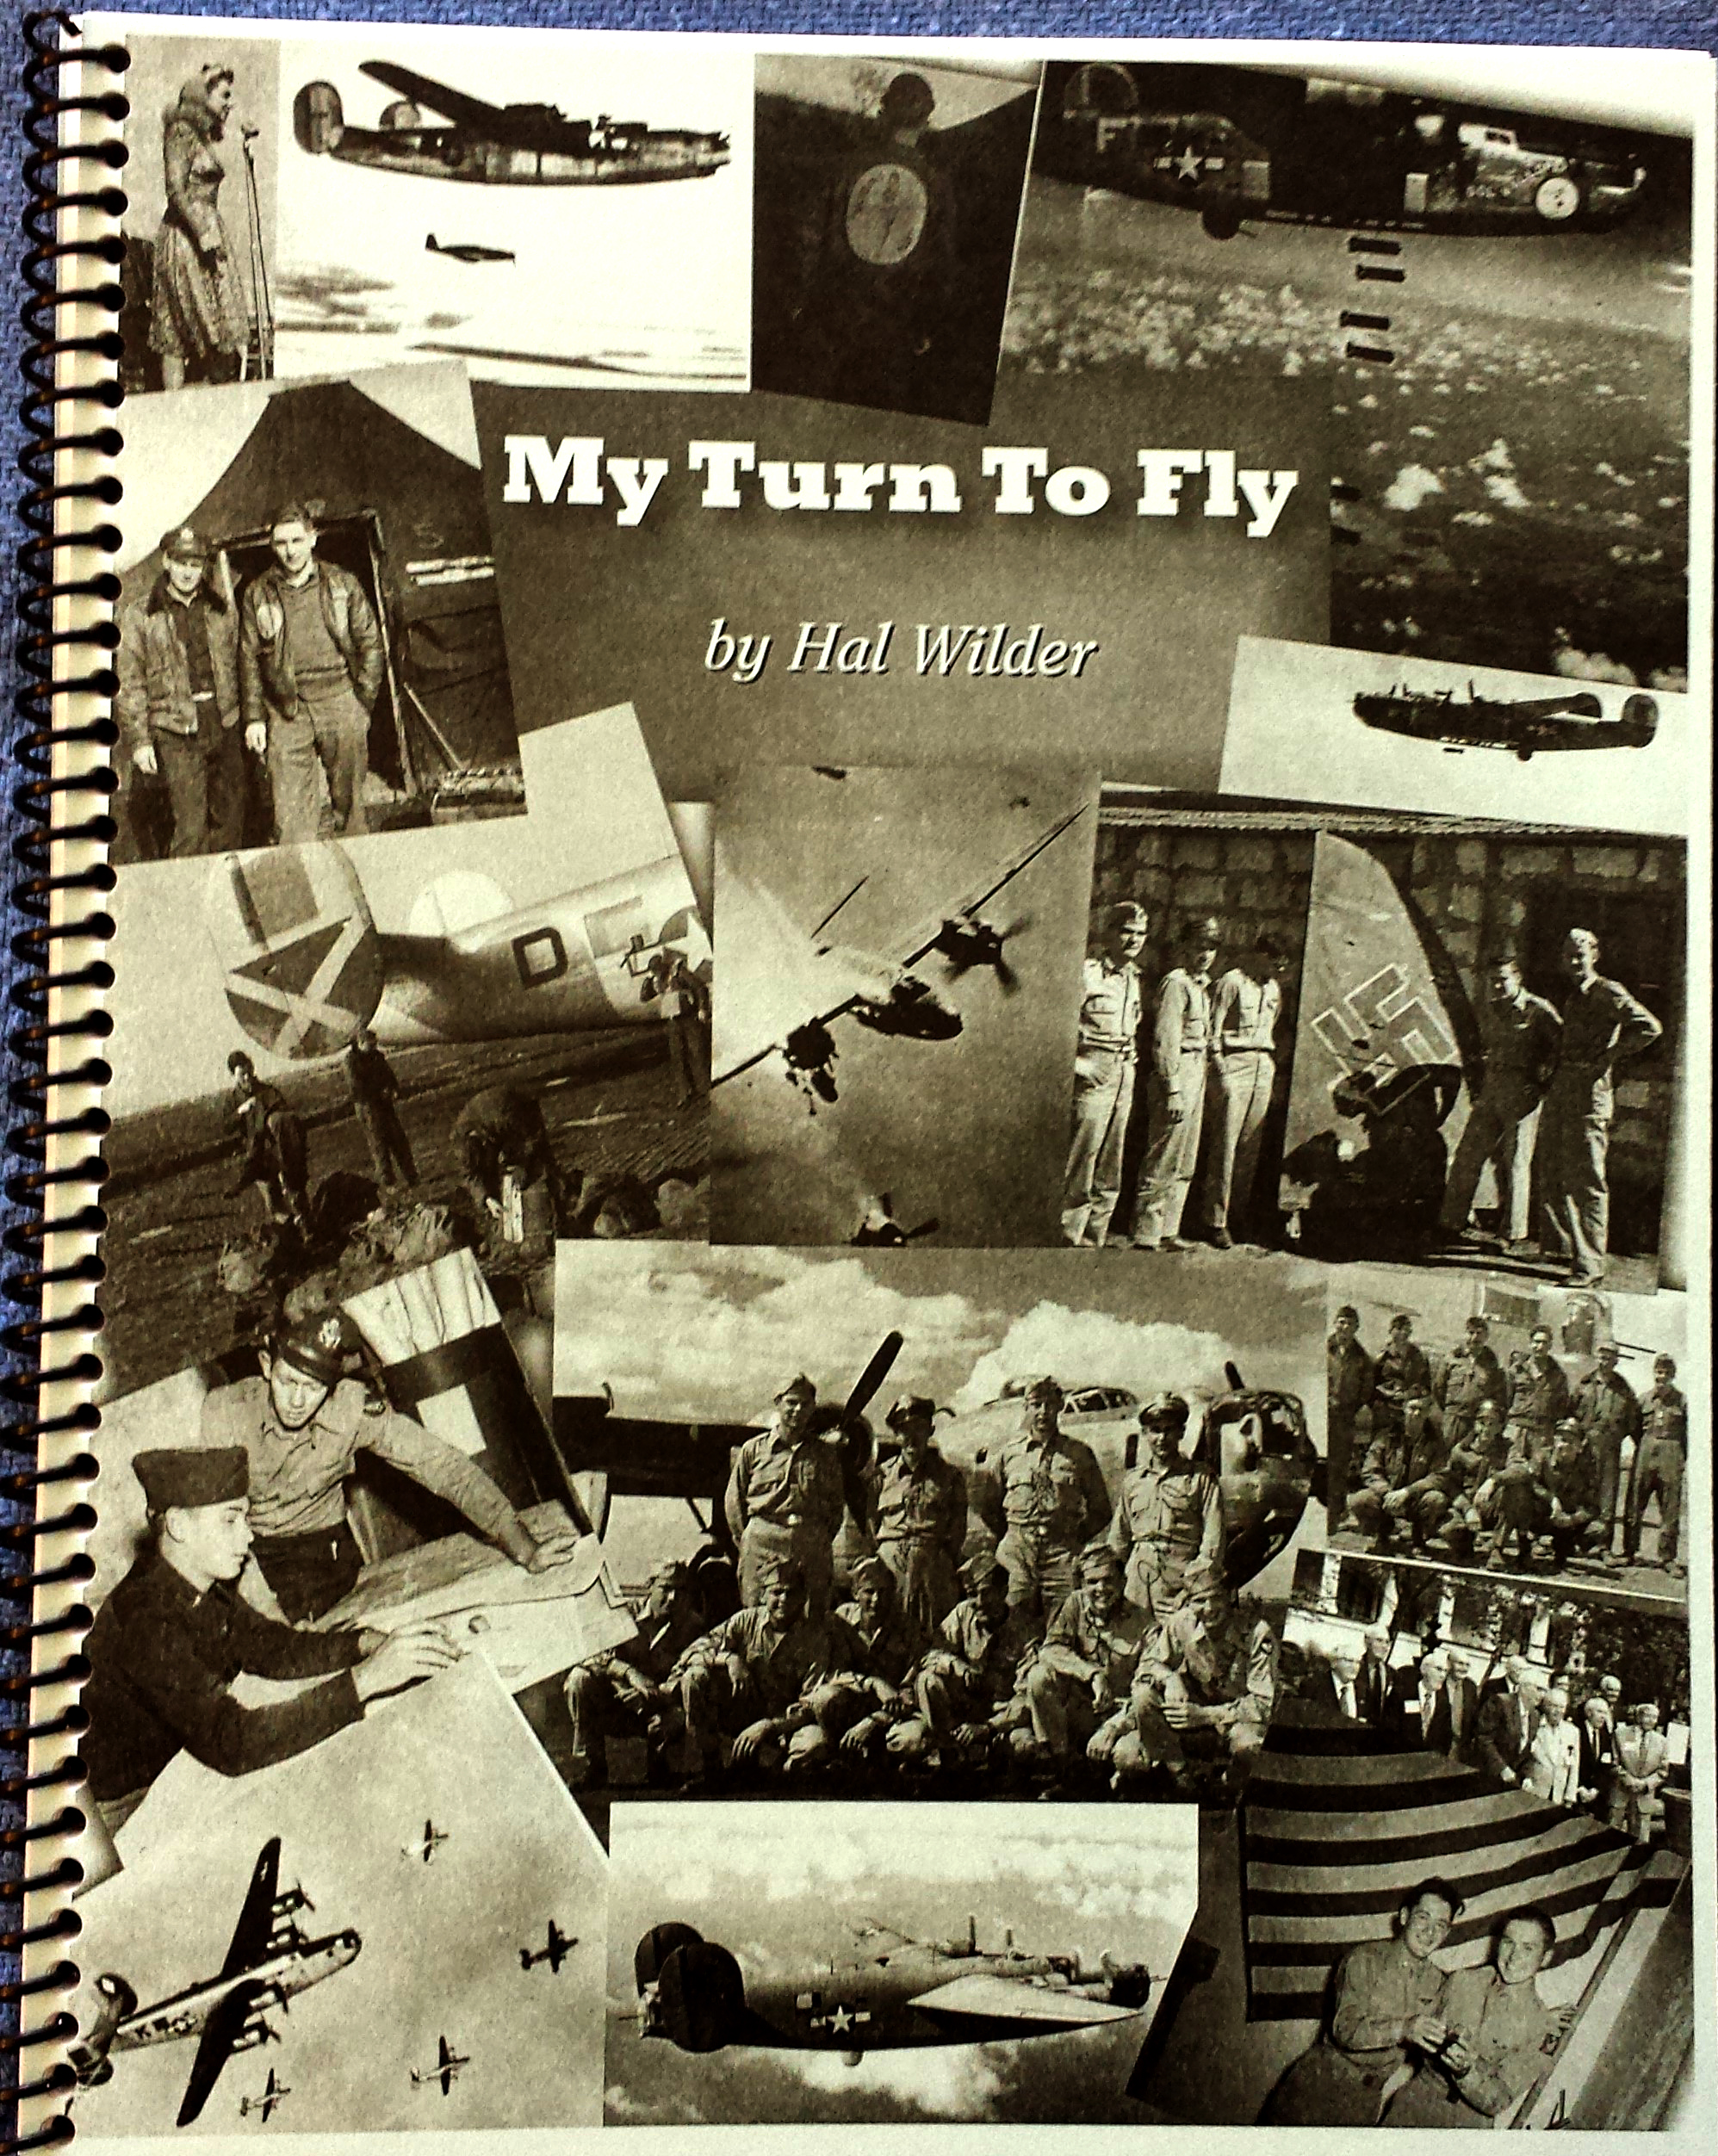 My turn to fly